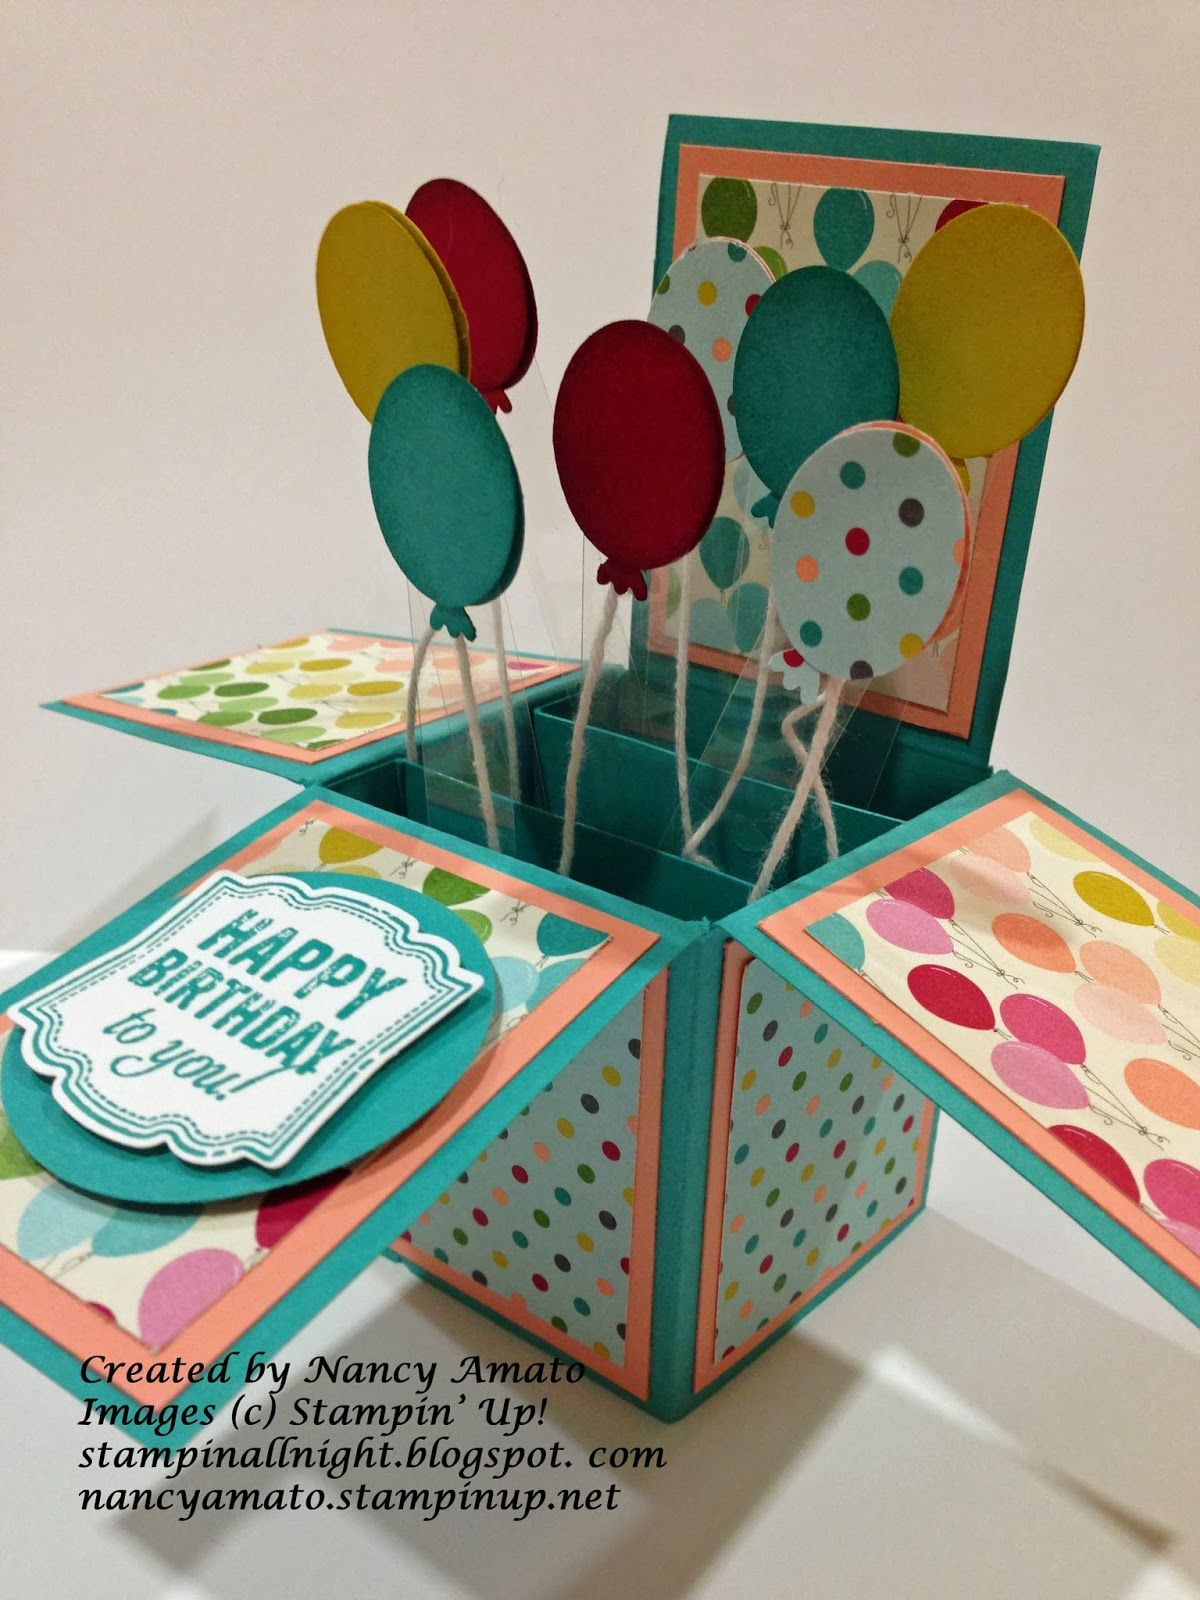 Lieblings Cards In A Box! (Stampin' All Night) | DIY Cards ✉ | Pinterest #TF_91